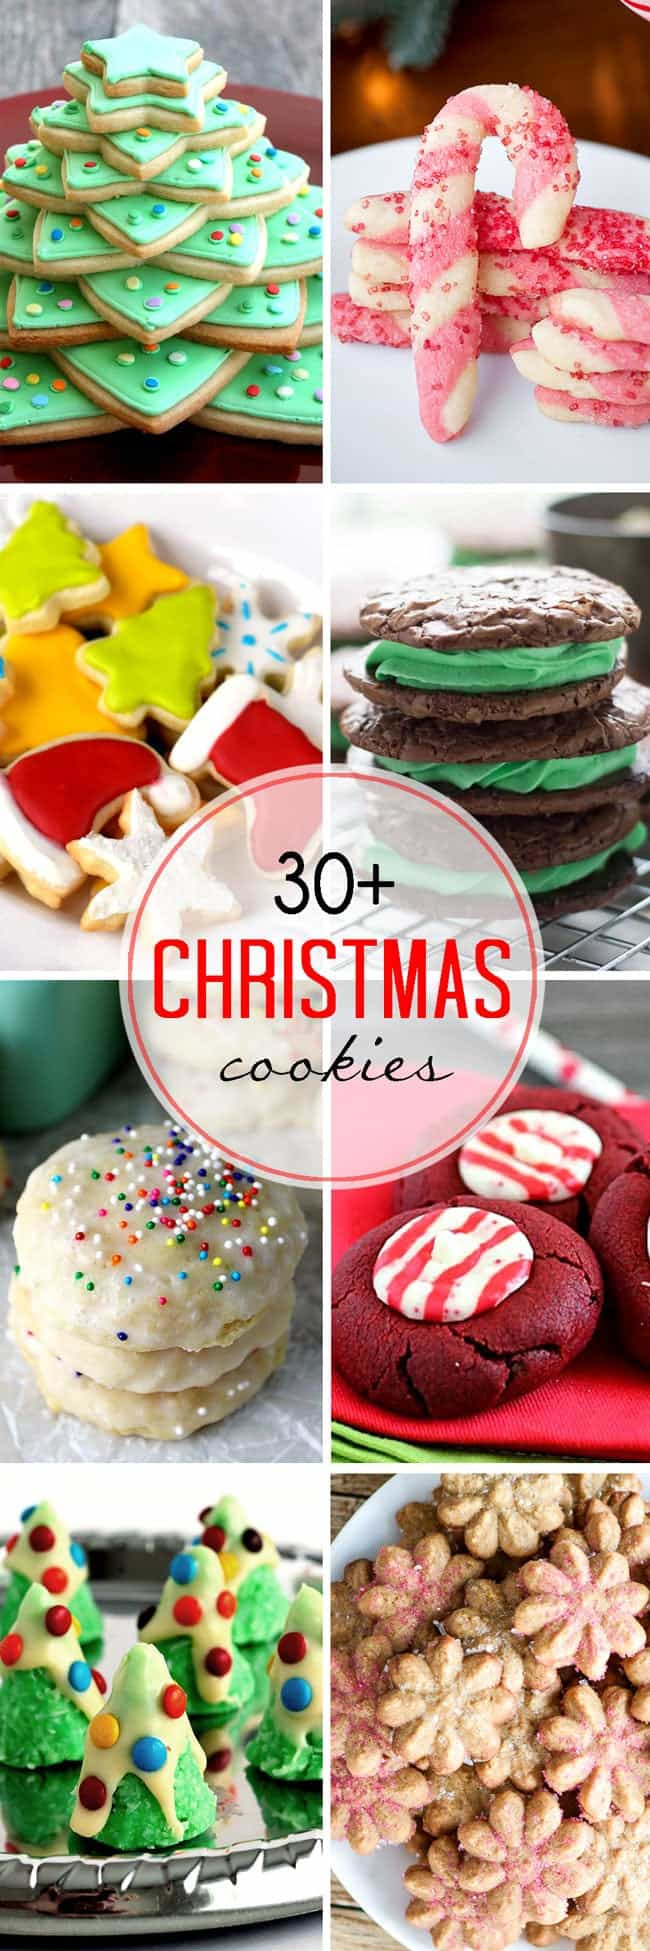 Easiest Christmas Cookies  30 Easy Christmas Cookies LemonsforLulu